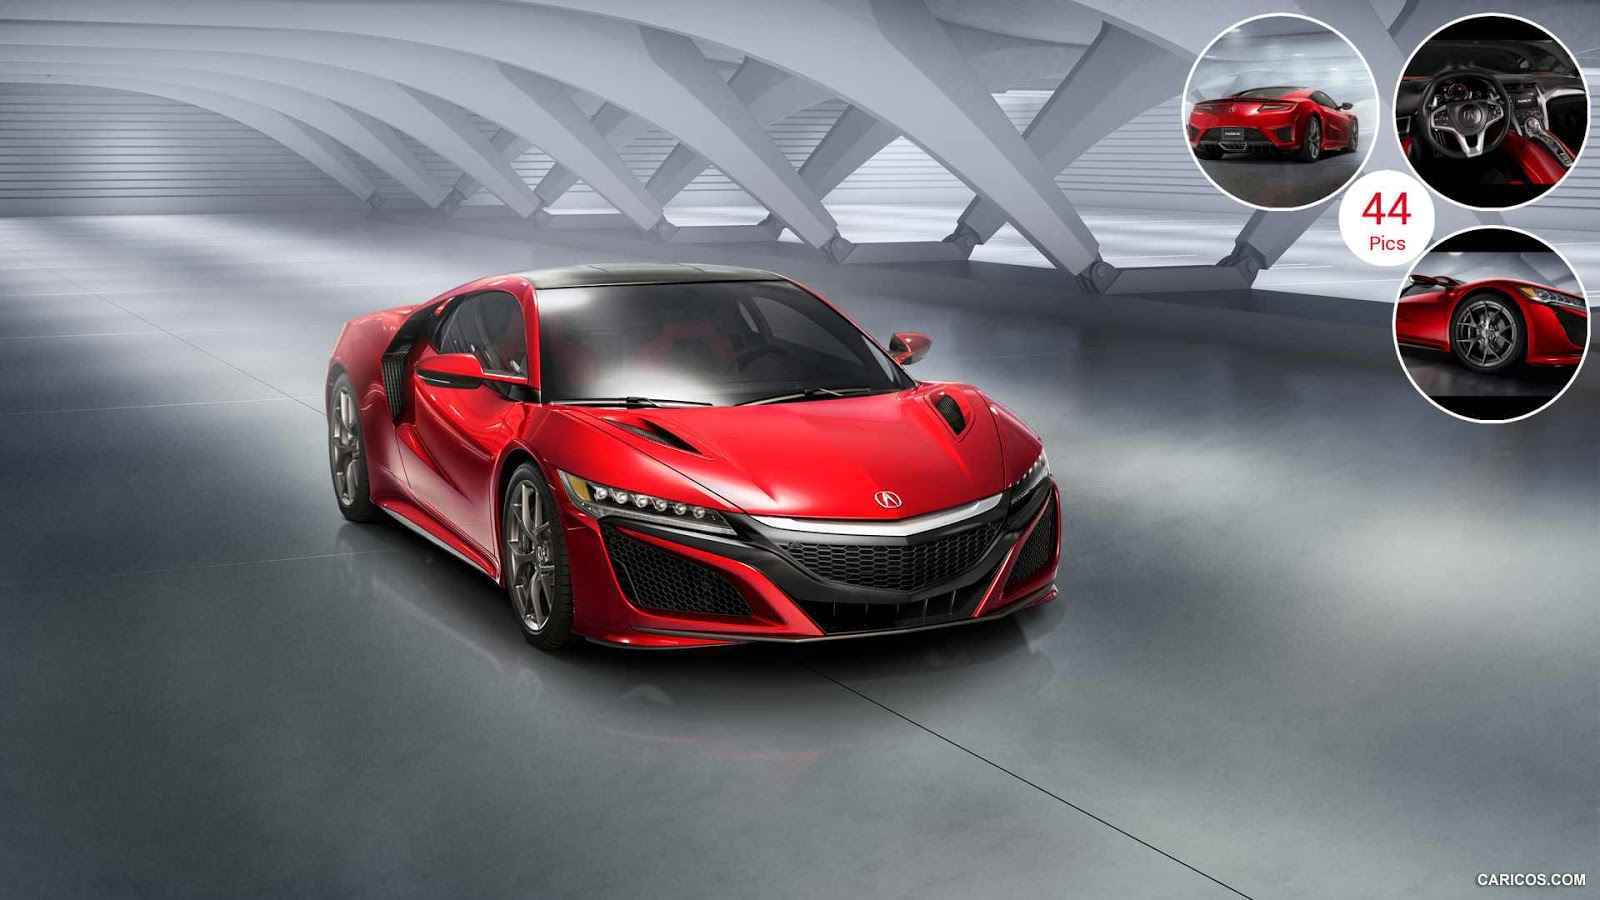 2016 Acura NSX HD wallpapers